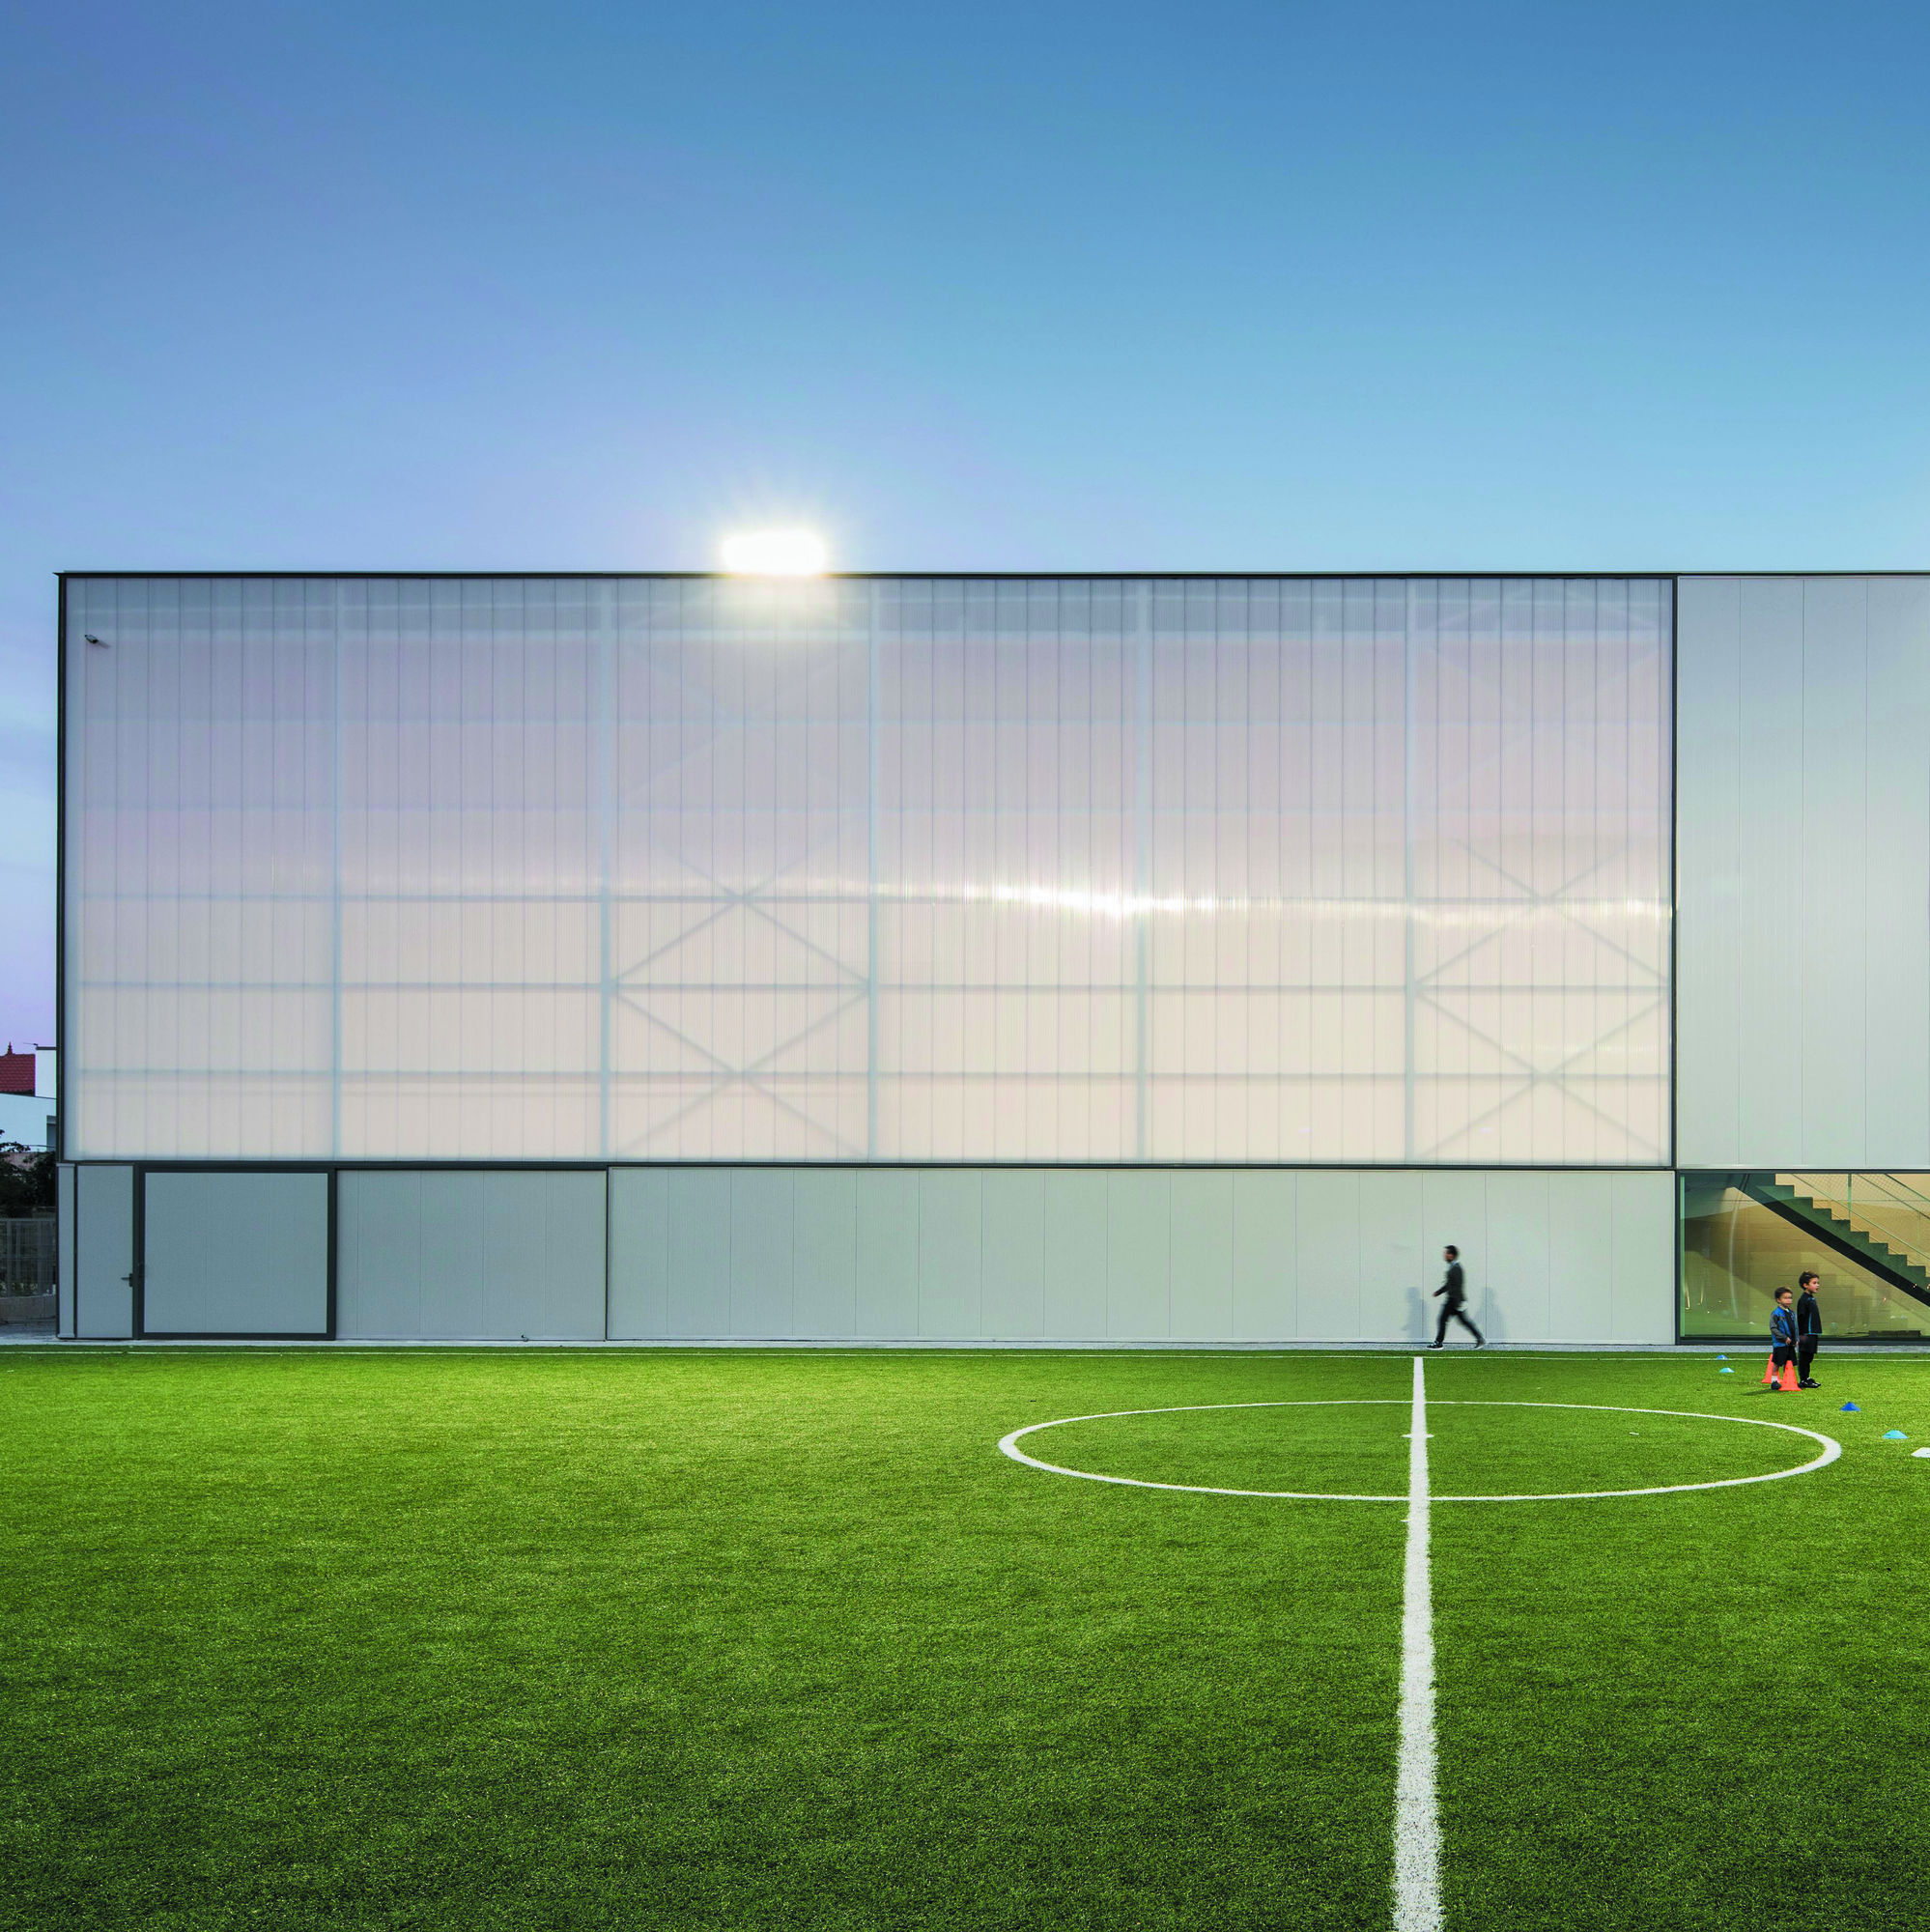 Elfanor Sports Centre, Matosinhos, Portugal -Image 4